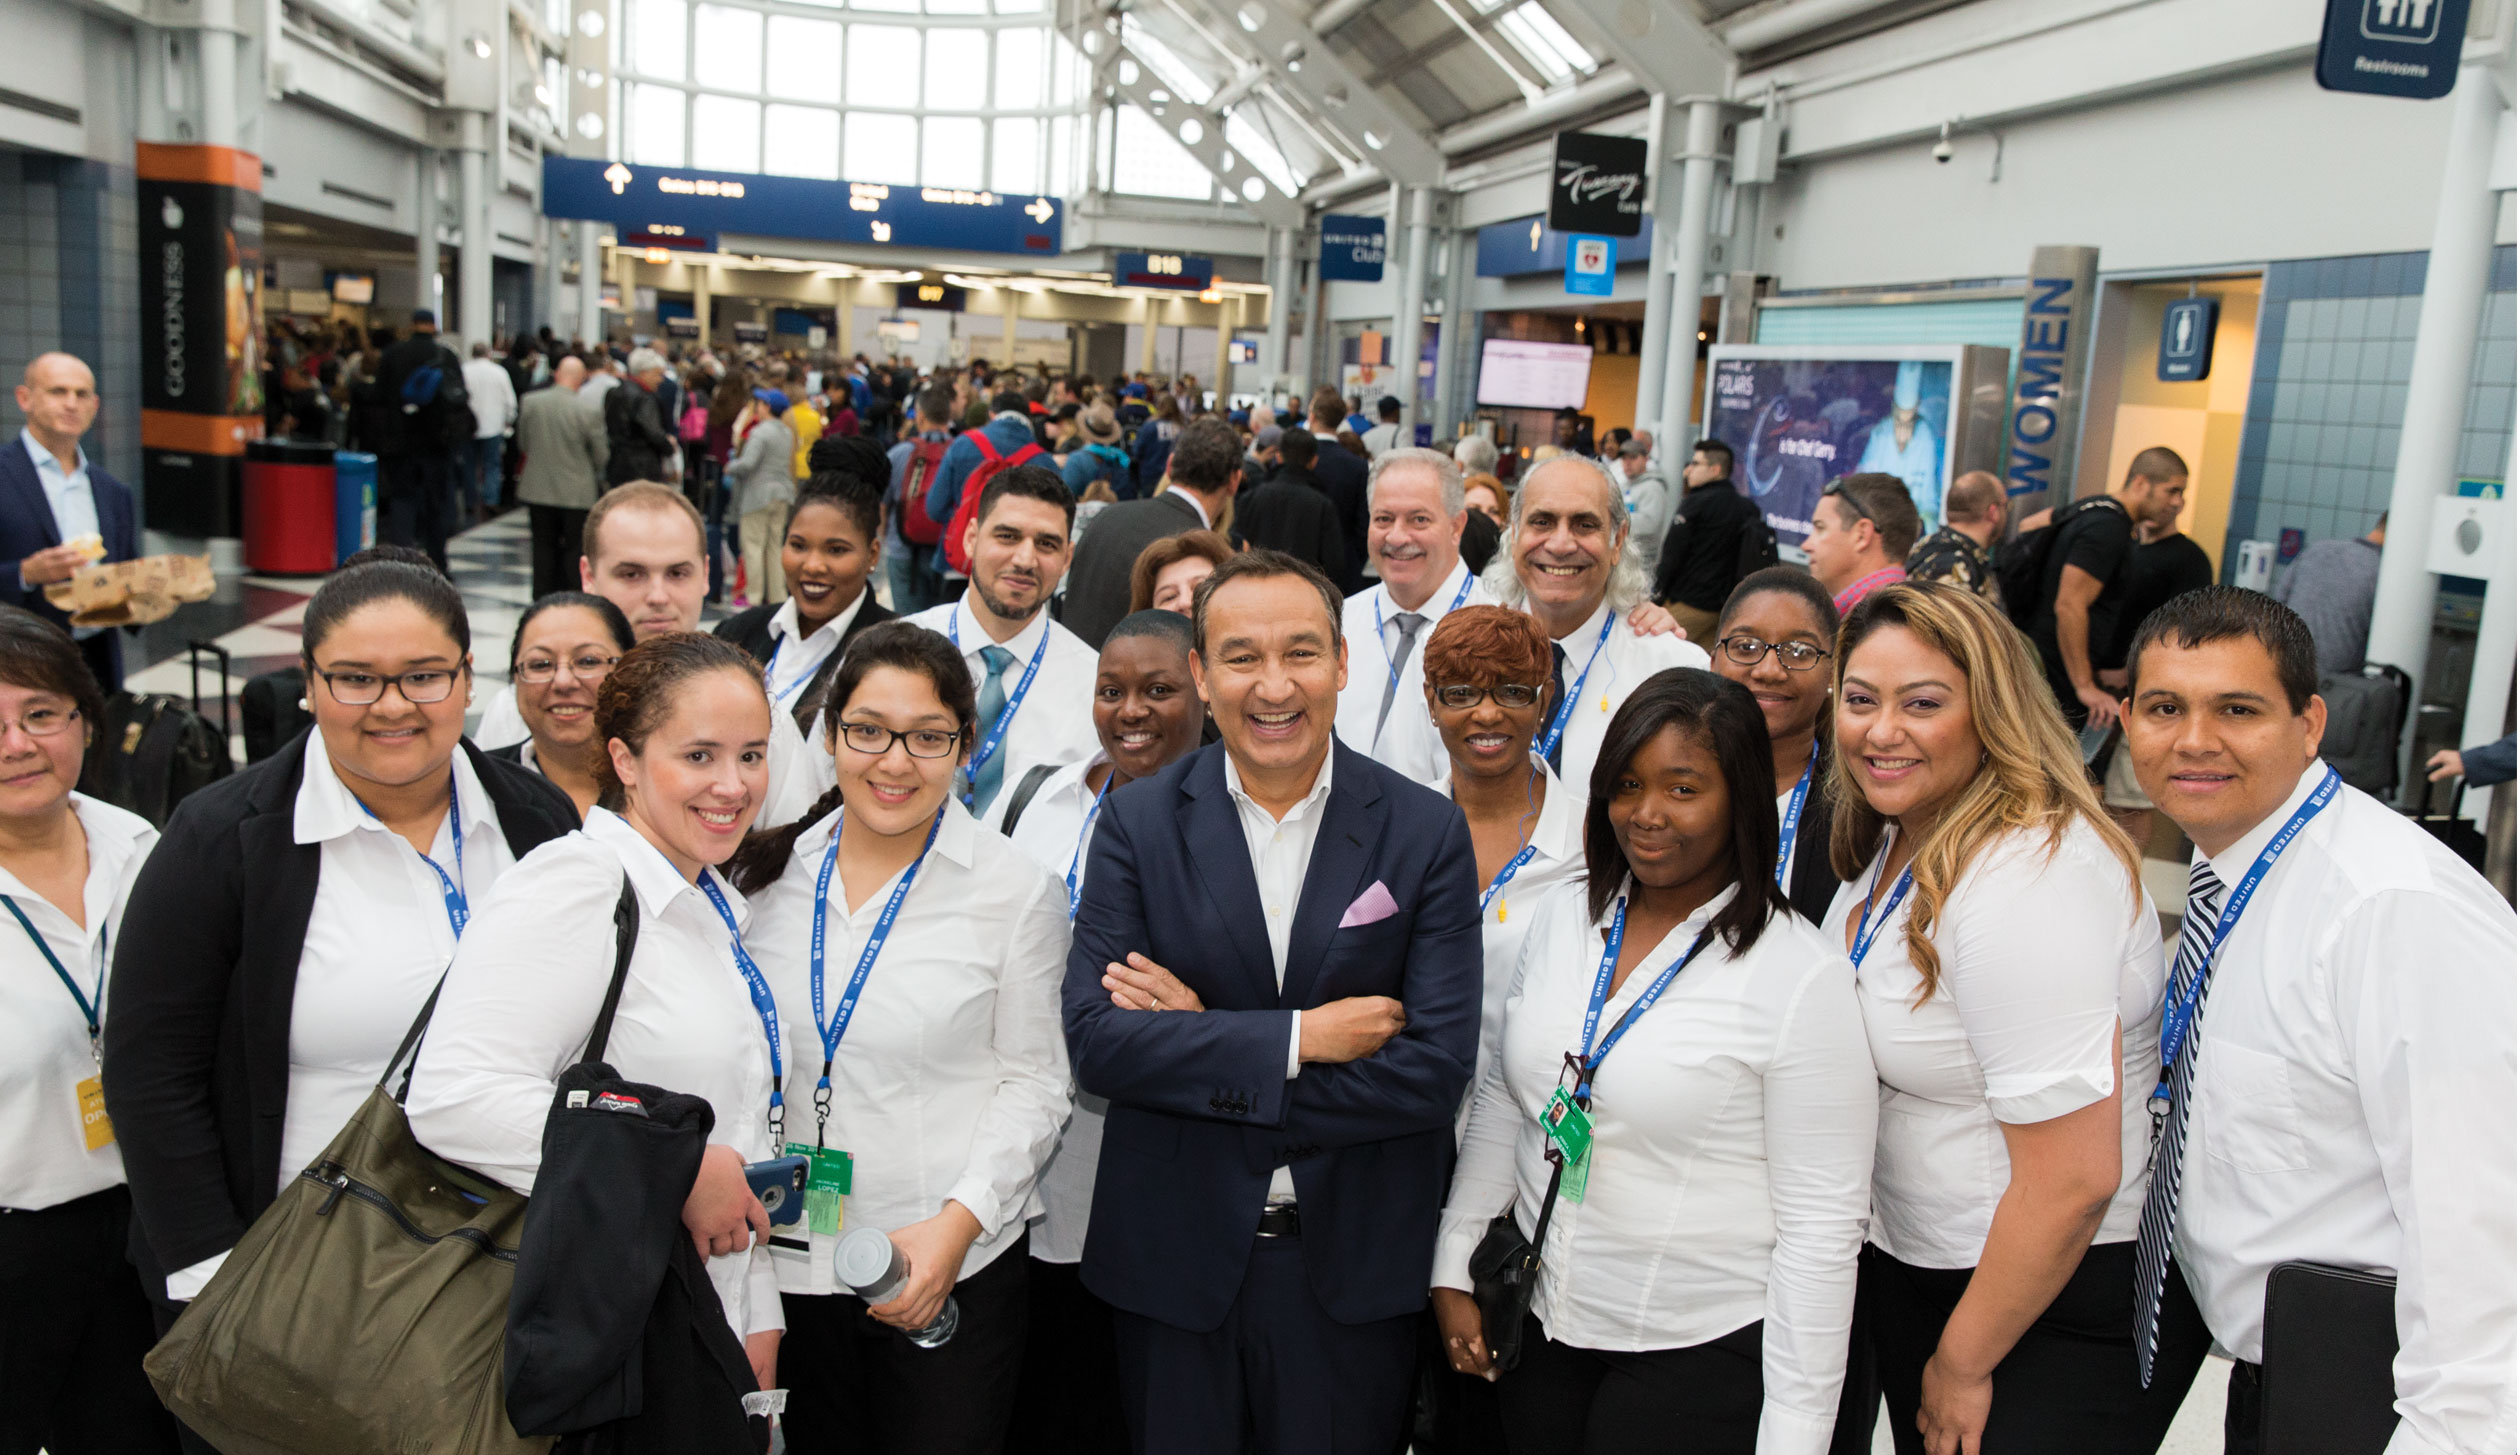 Munoz with United workers during a recent trip through O'Hare.